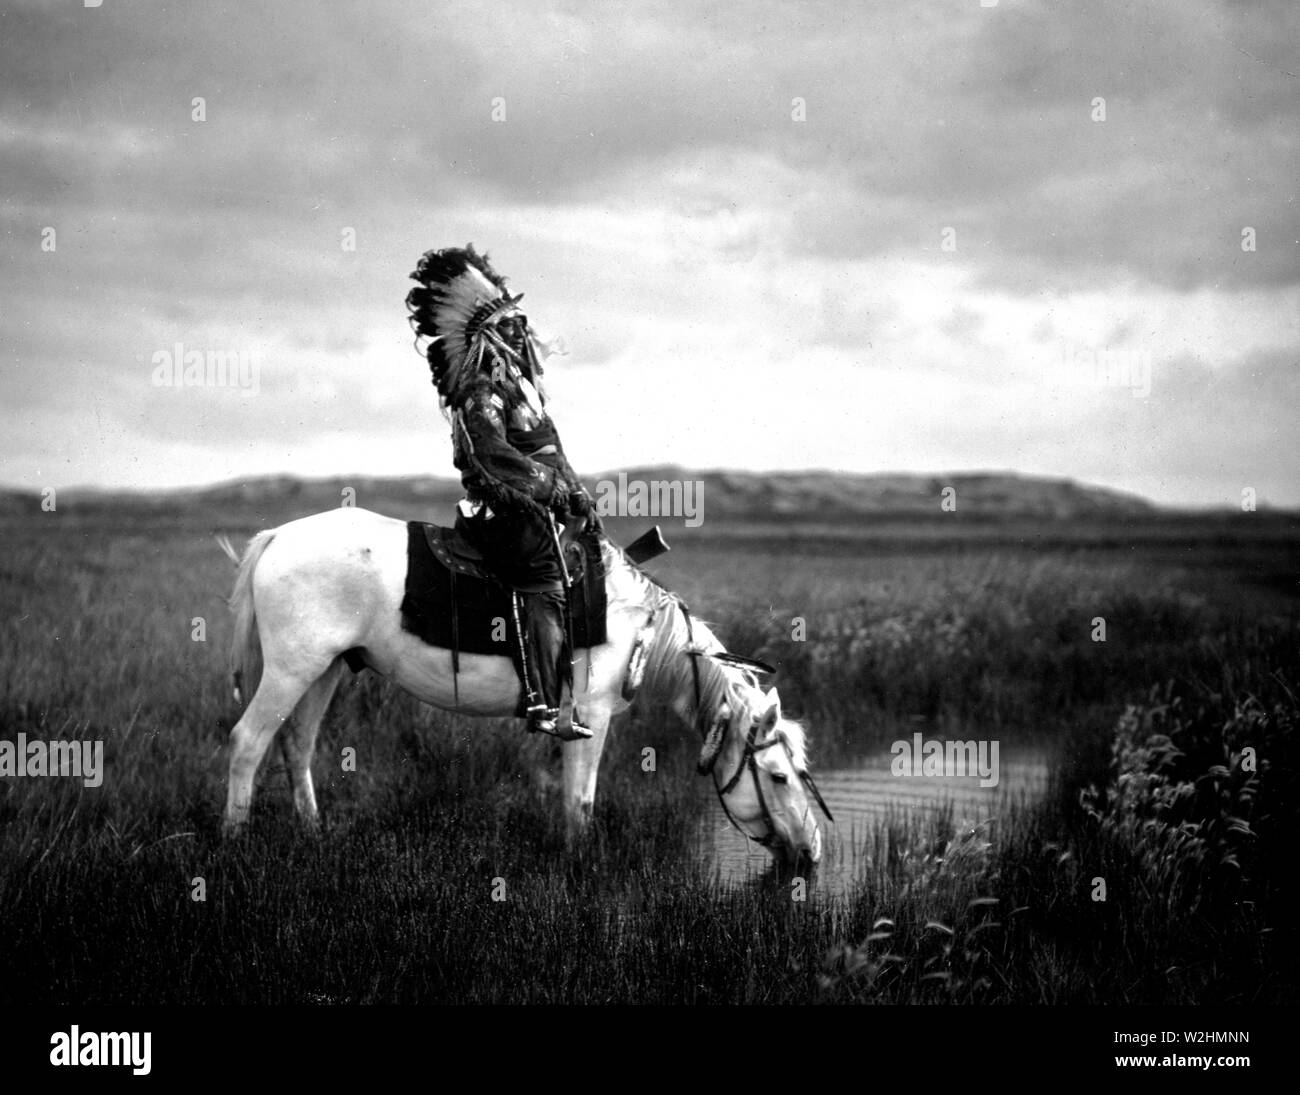 Edward S Curtis Native American Indians Red Hawk An Oglala Warrior Sitting On A Horse That Is Drinking From A Small Pond In The Badlands Ca 1905 Stock Photo Alamy